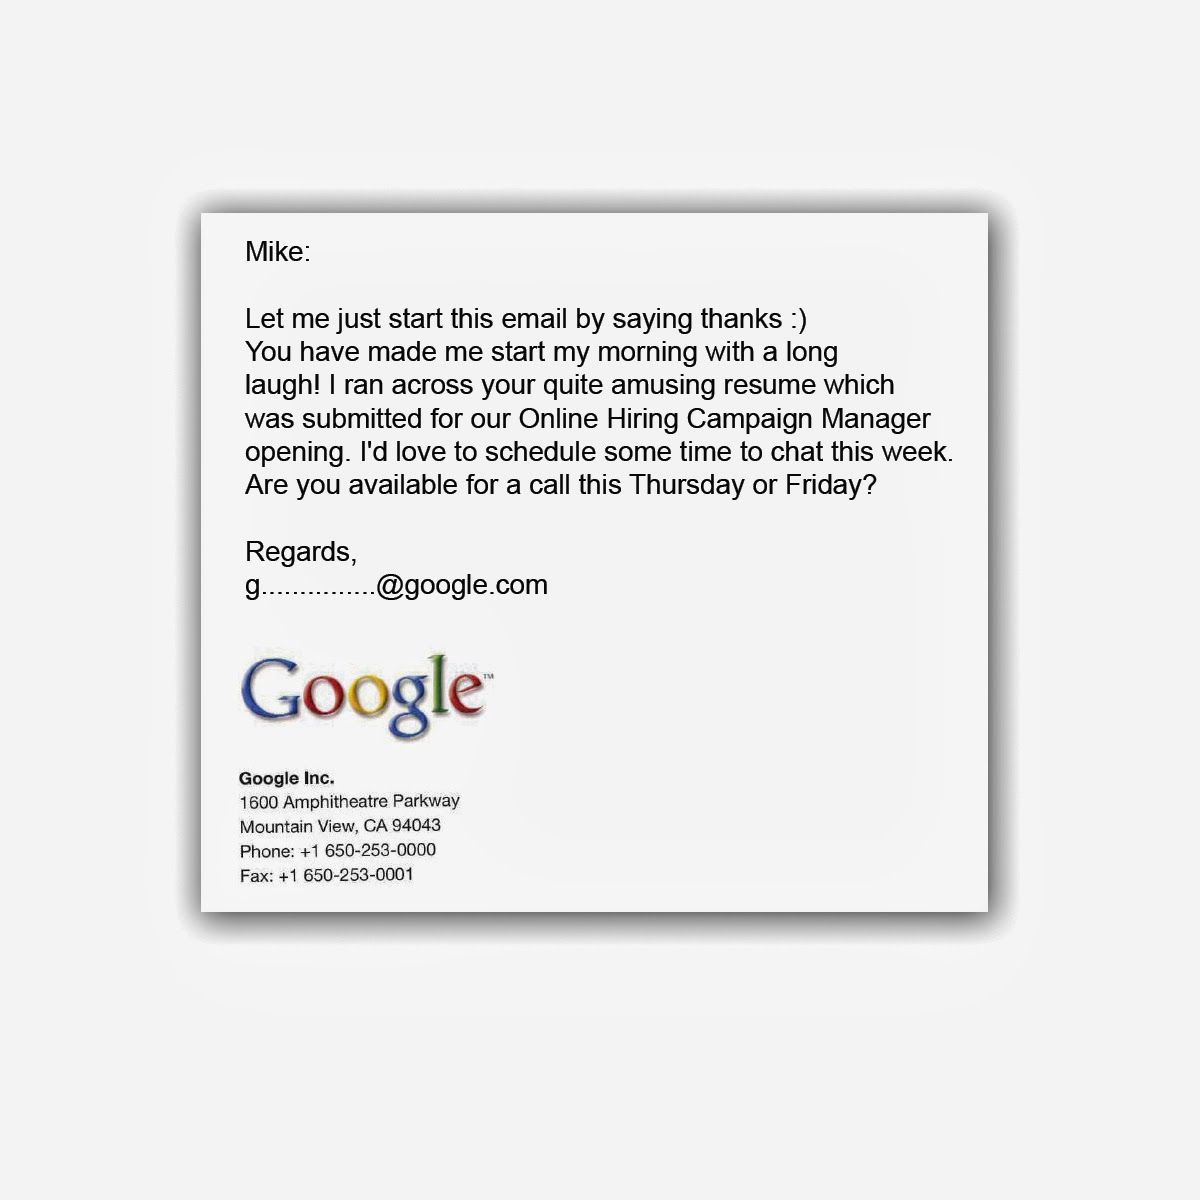 Outside of the Box Mikes Google Resume Mike Kirner Marketing